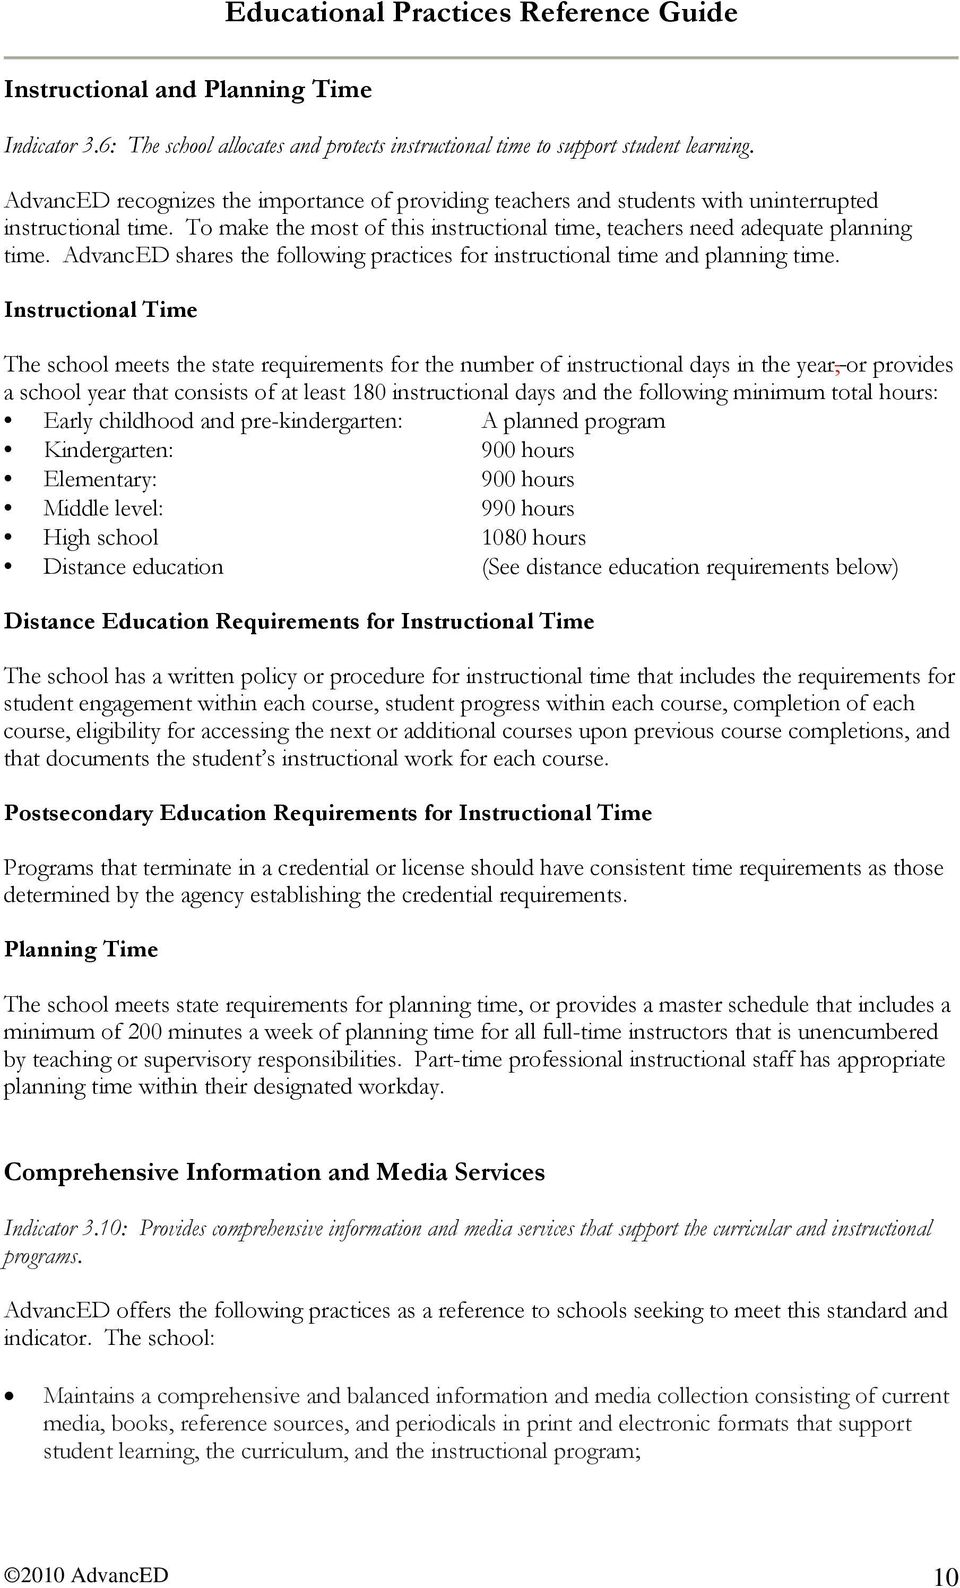 AdvancED shares the following practices for instructional time and planning time.